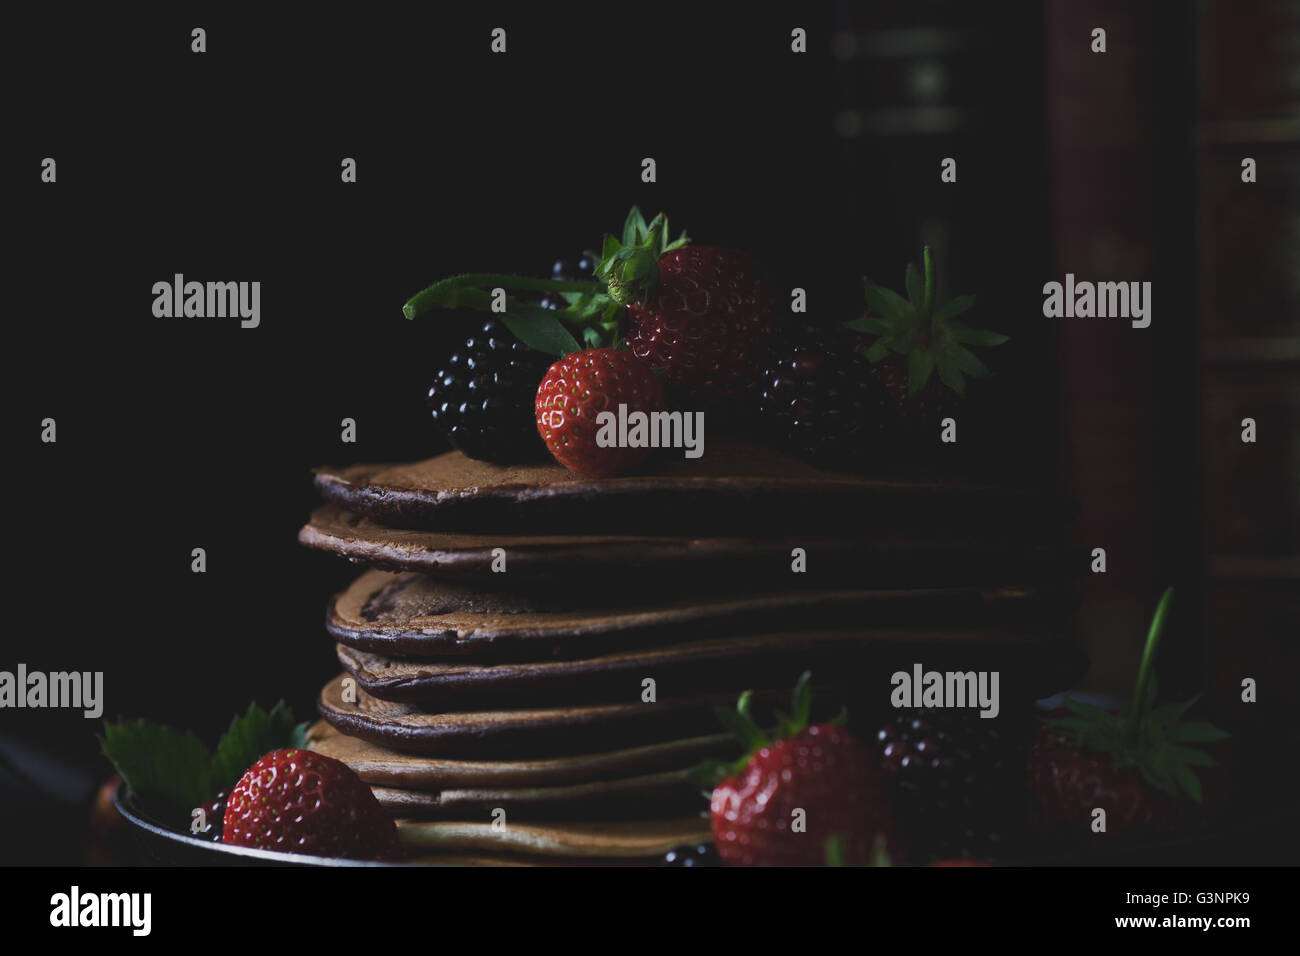 Pancakes in the rusty pan with strawberries and blackberries  and old books in background with mystical light - Stock Image